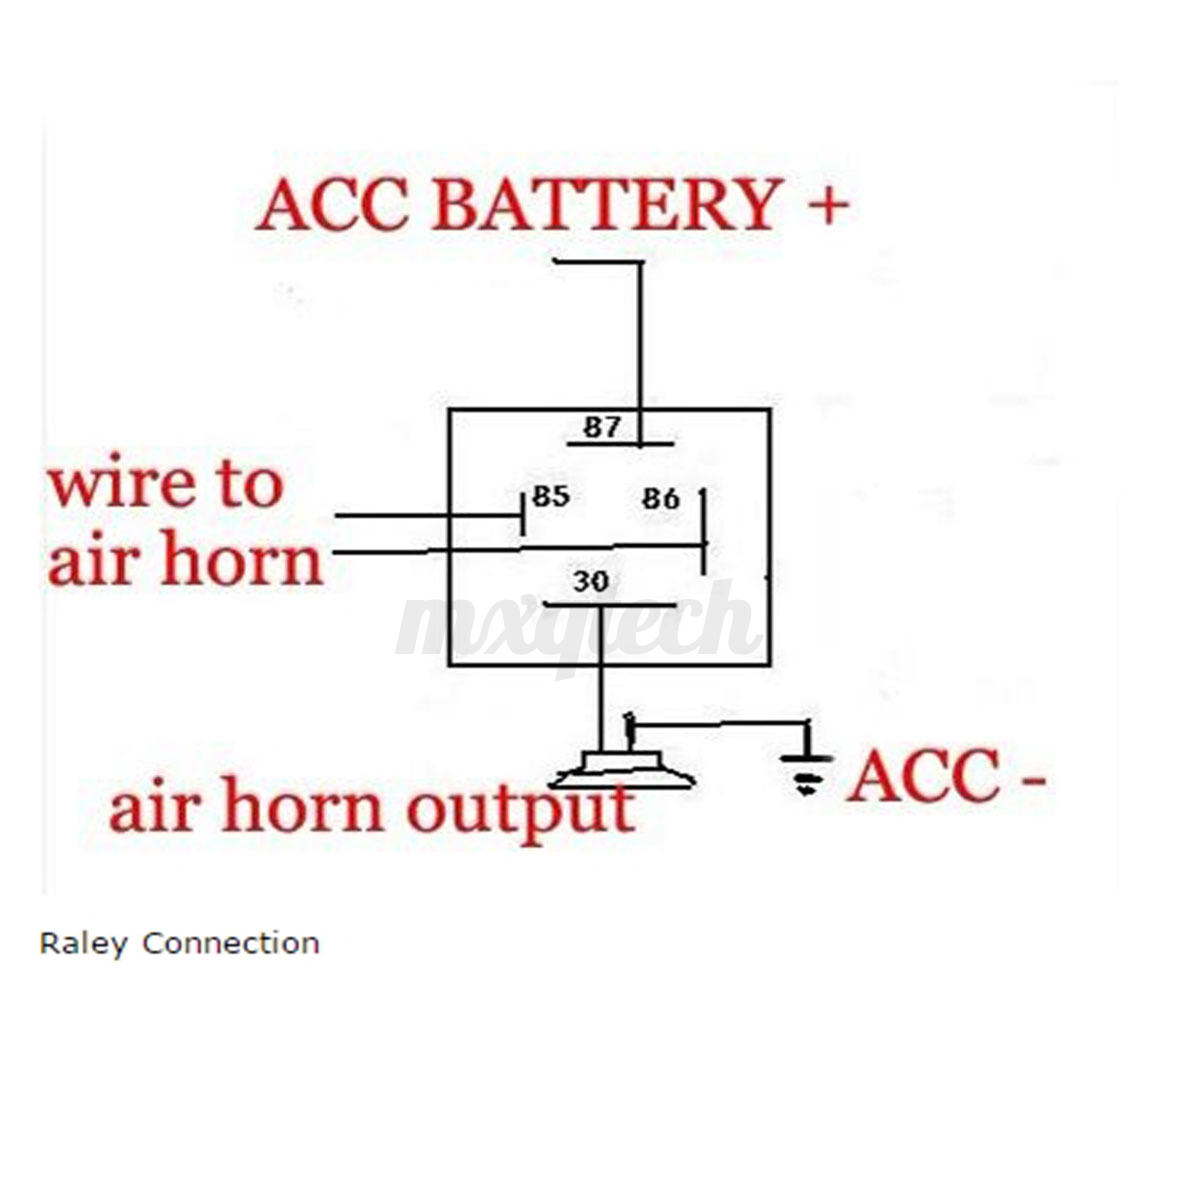 Wolo Dixie Horn Wiring Trusted Wiring Diagrams \u2022 Simple 12V Horn  Wiring Diagram Wolo Musical Horn Wiring Diagram